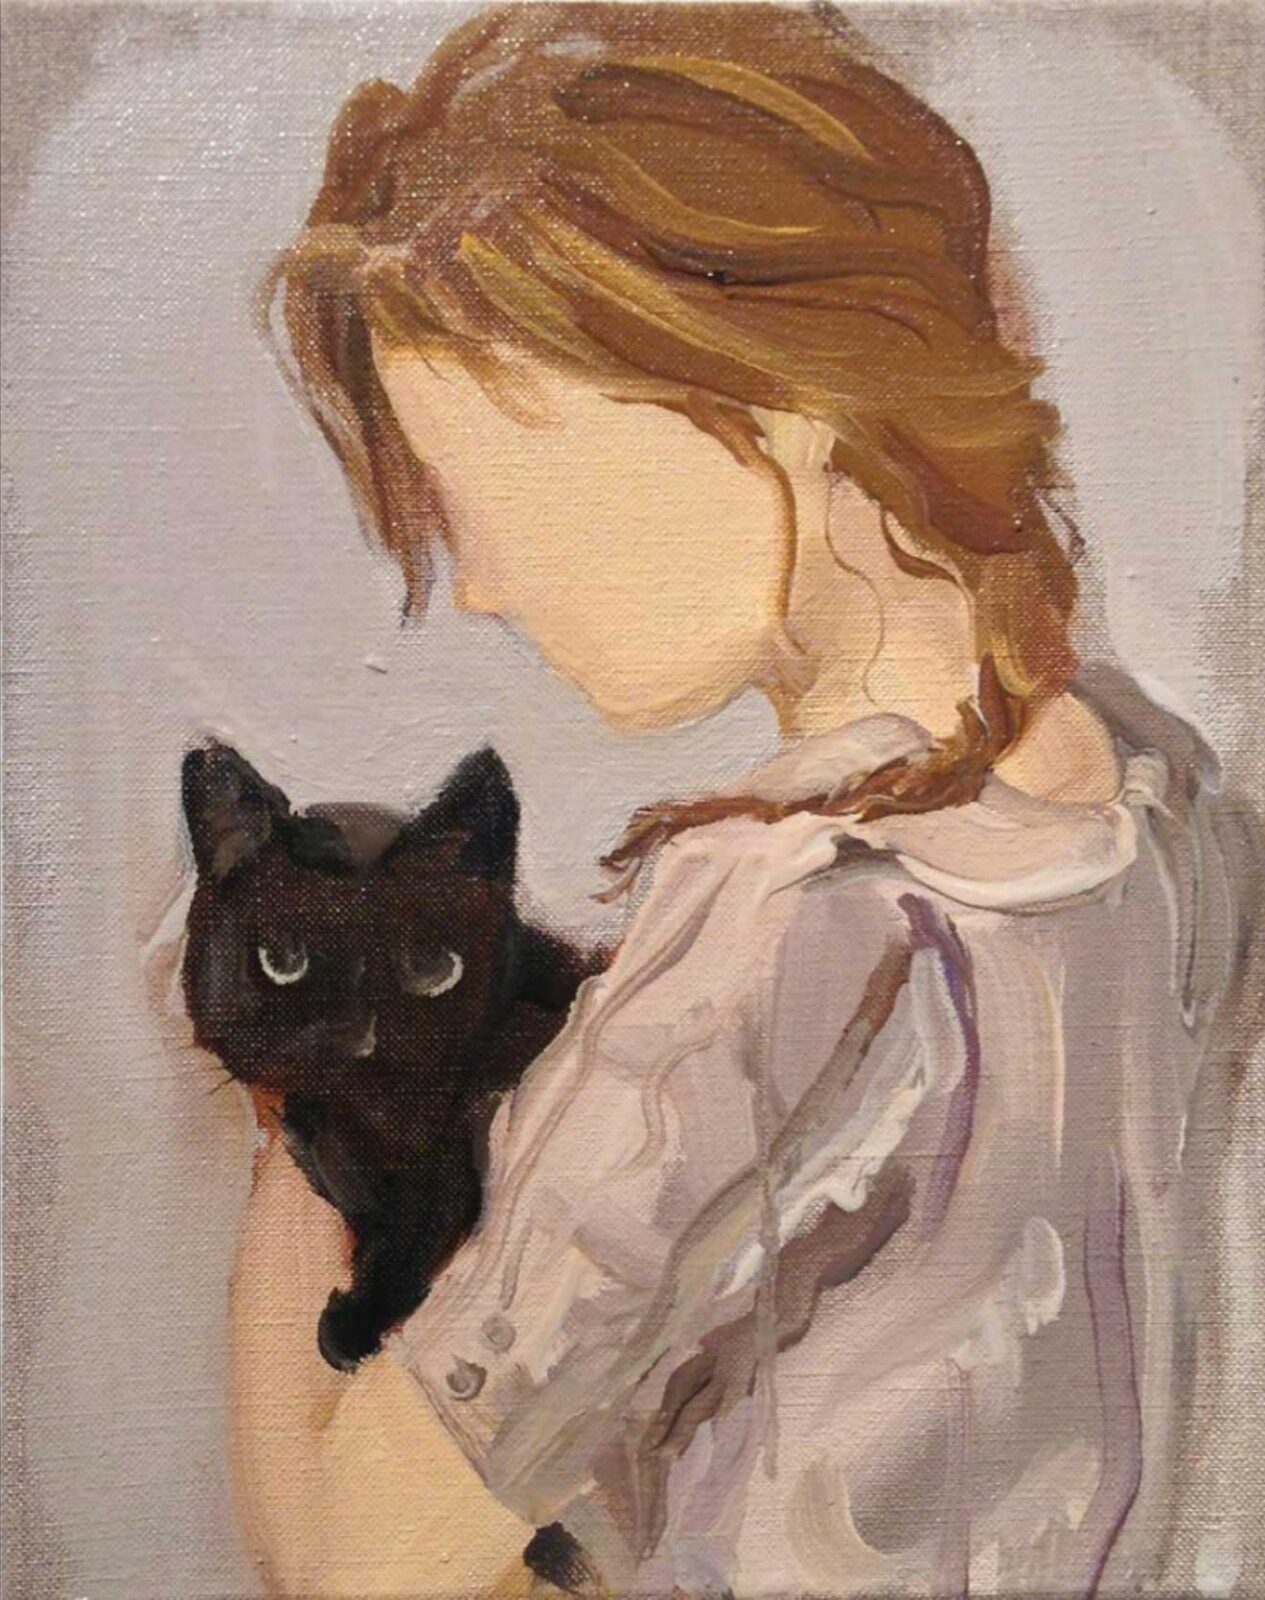 Gideon Rubin, Black Cat, 2012